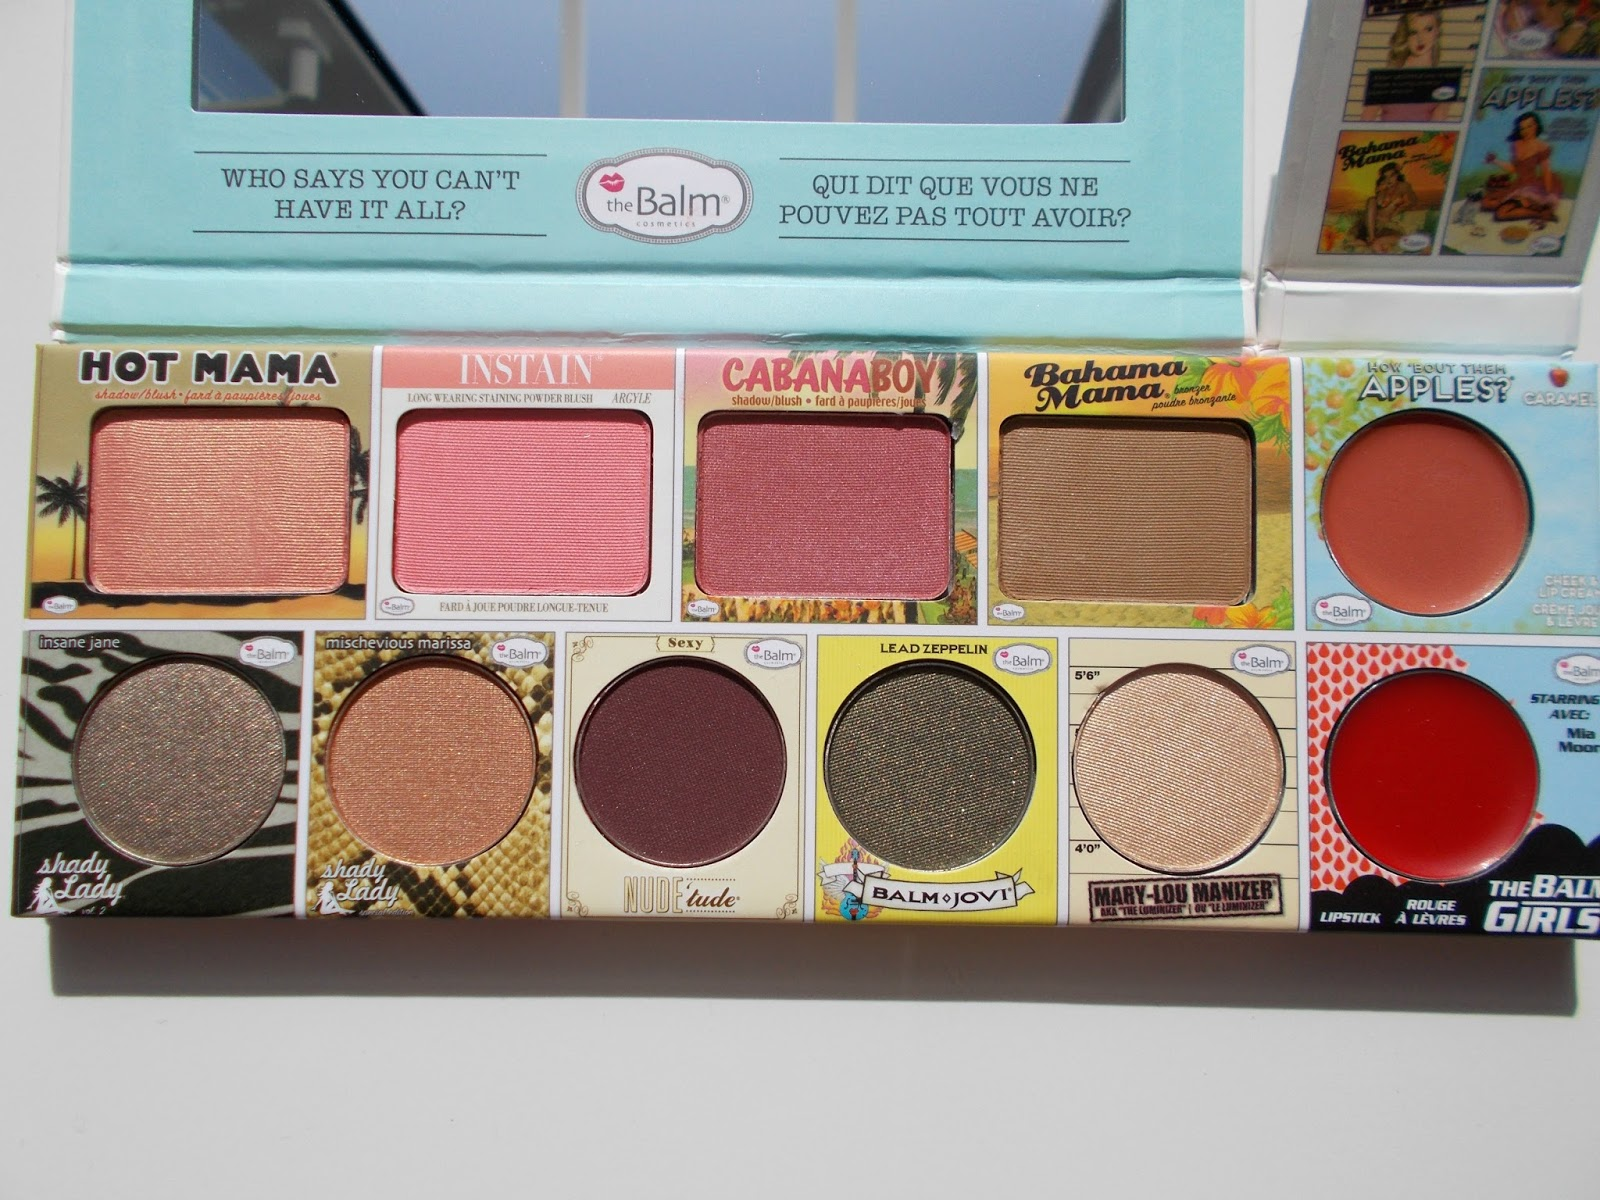 The Balm In the Balm of your Hand palette close up